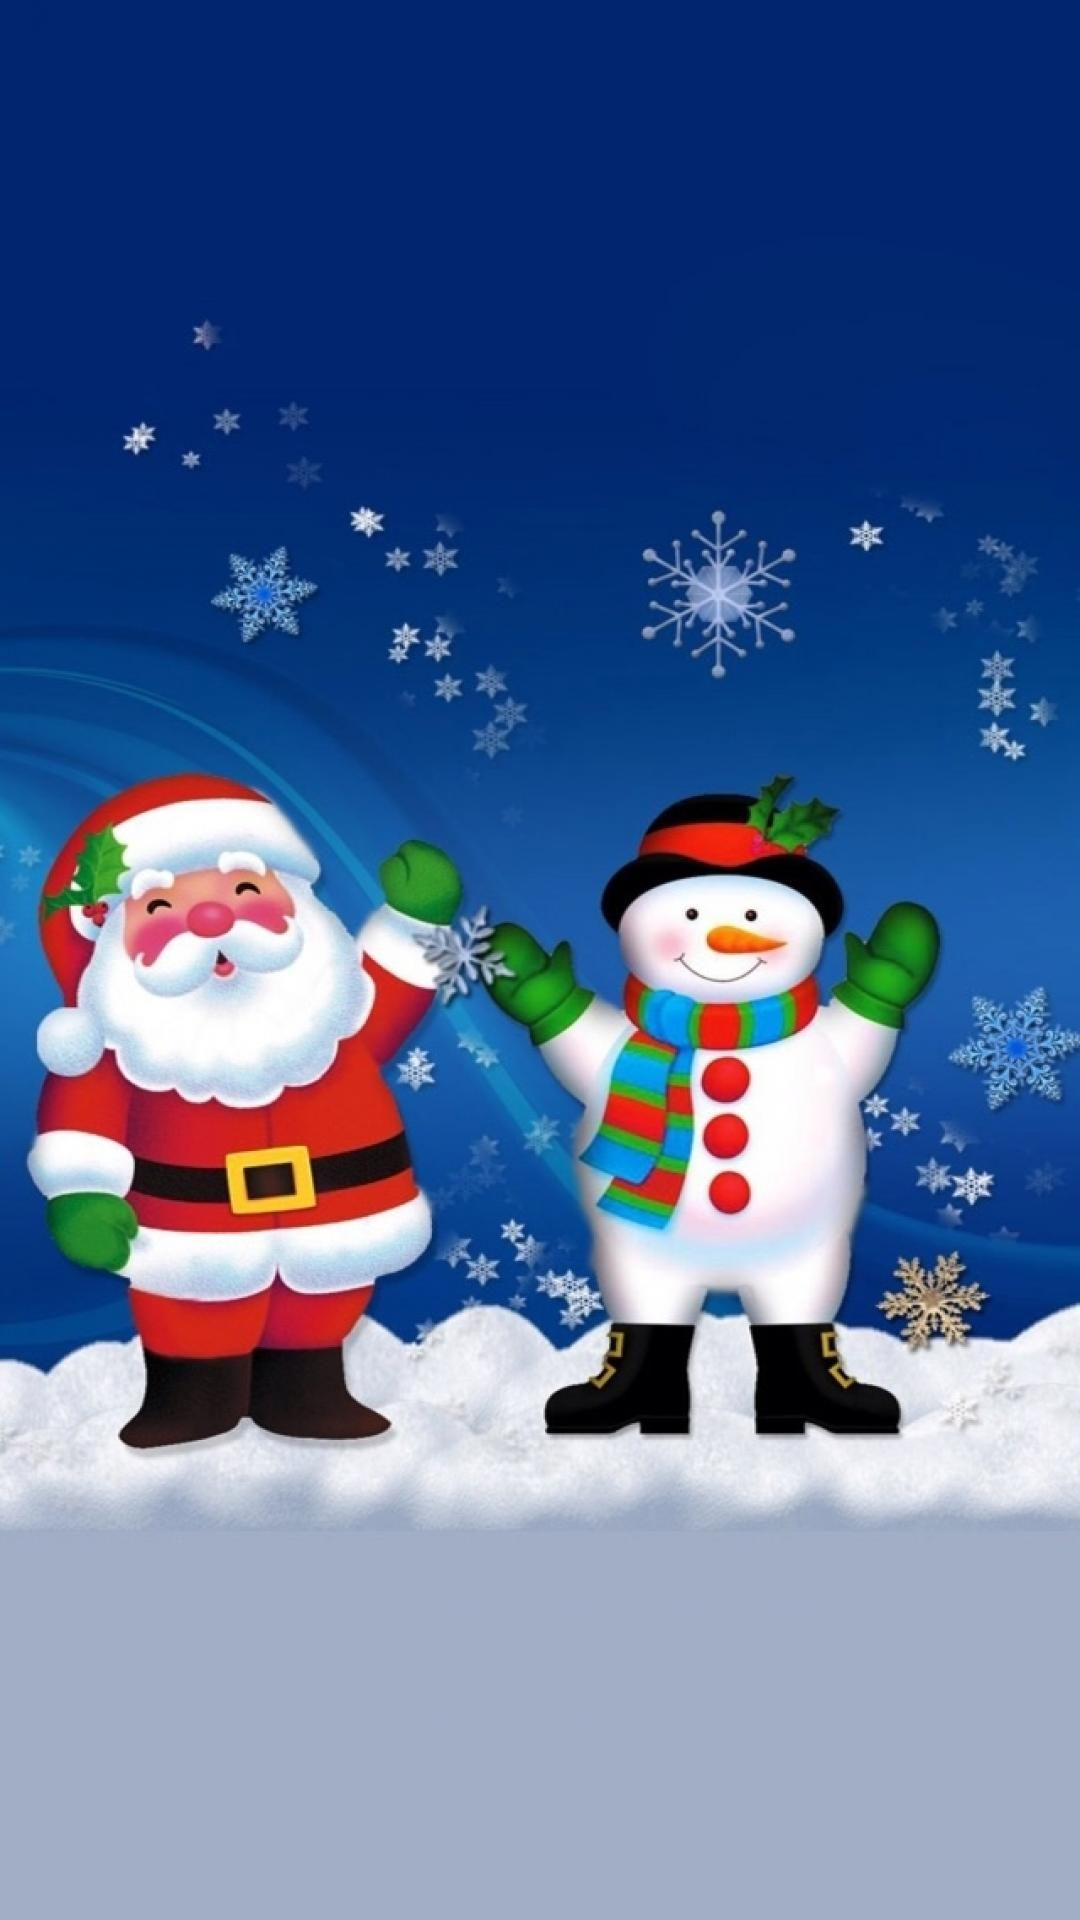 Merry Christmas Santa Claus And Snowman #iPhone #6 #plus #wallpaper | Merry christmas wallpaper ...